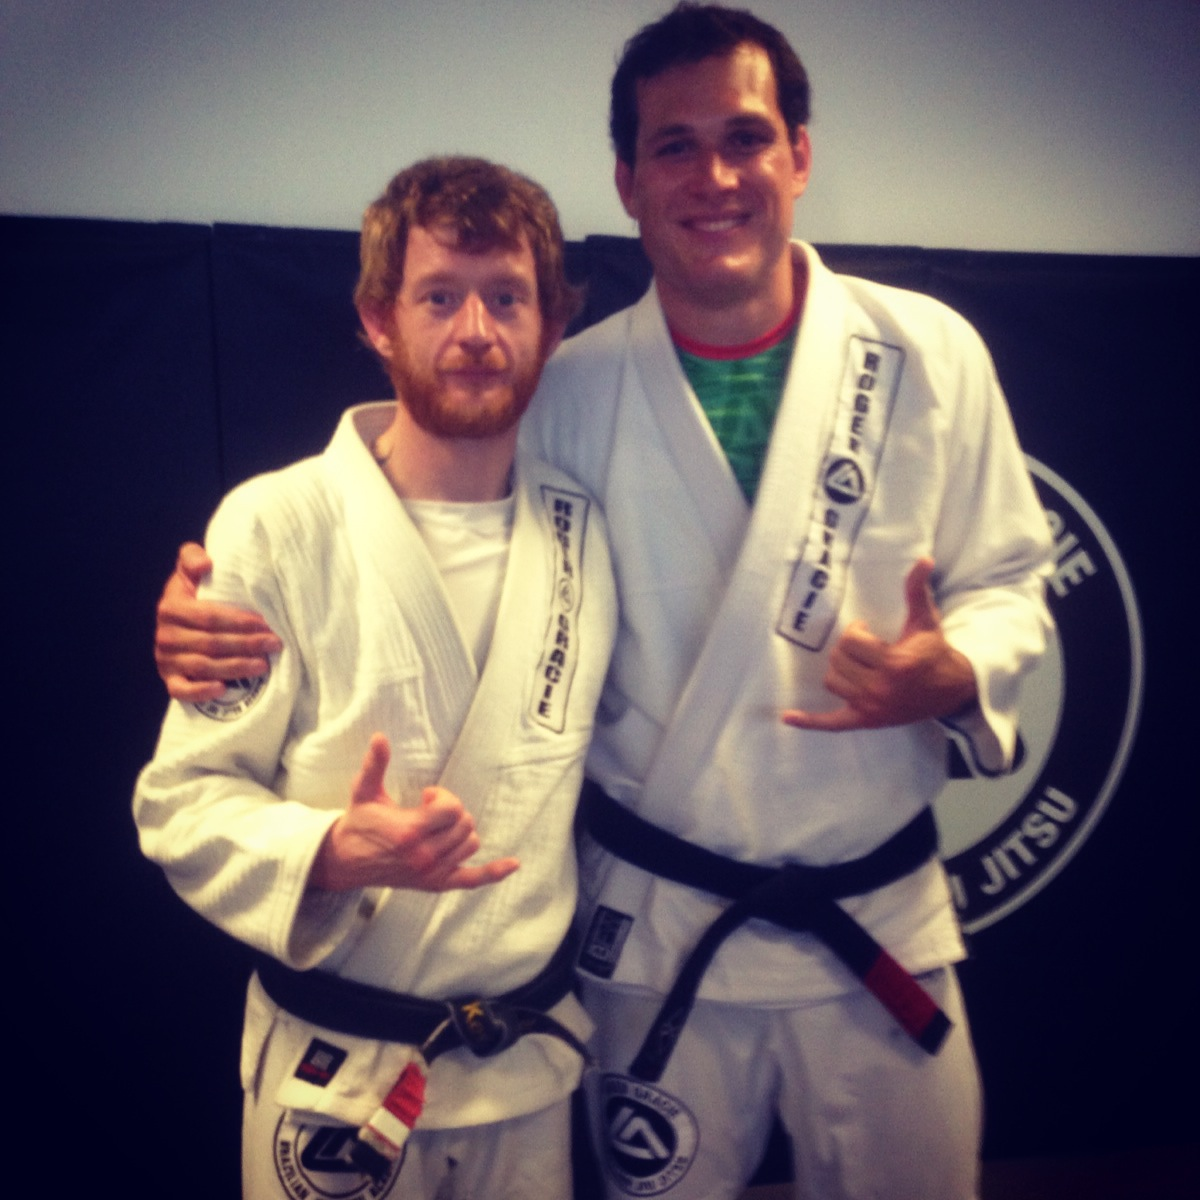 Kev Capel earns first degree from Roger Gracie. Photo: Personal archive